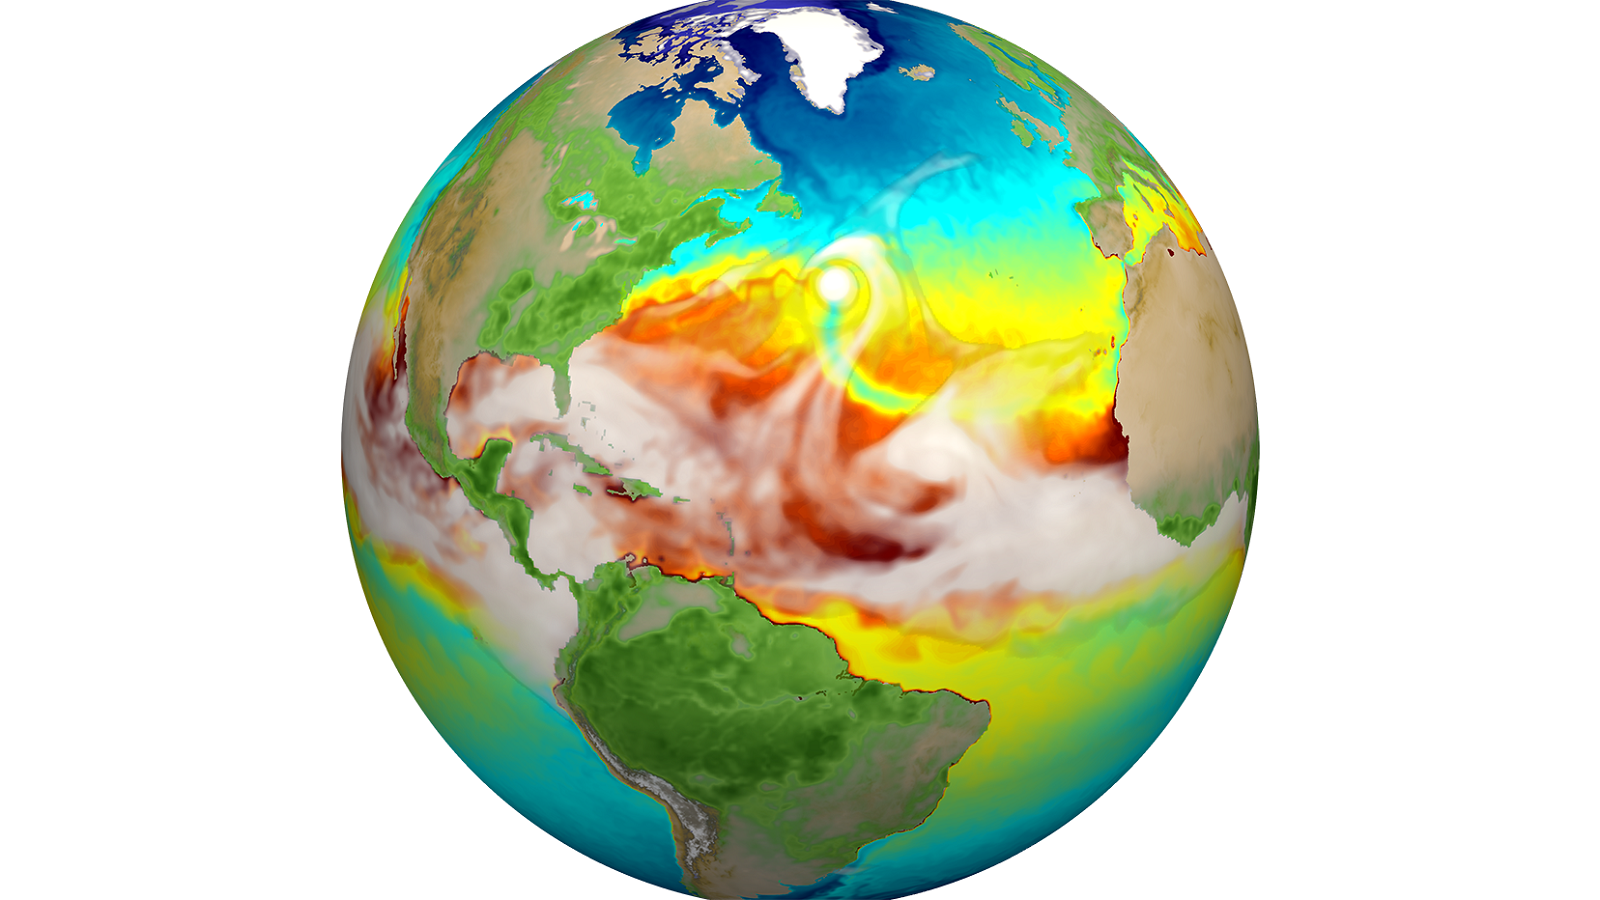 Water vapor (gray) and sea surface temperature (blue to red) from the high-resolution E3SMv1. Just above center you can see a hurricane and the track of cold water (green) it produces trailing behind it. (Image by Mat Maltrud / Los Alamos National Laboratory.)